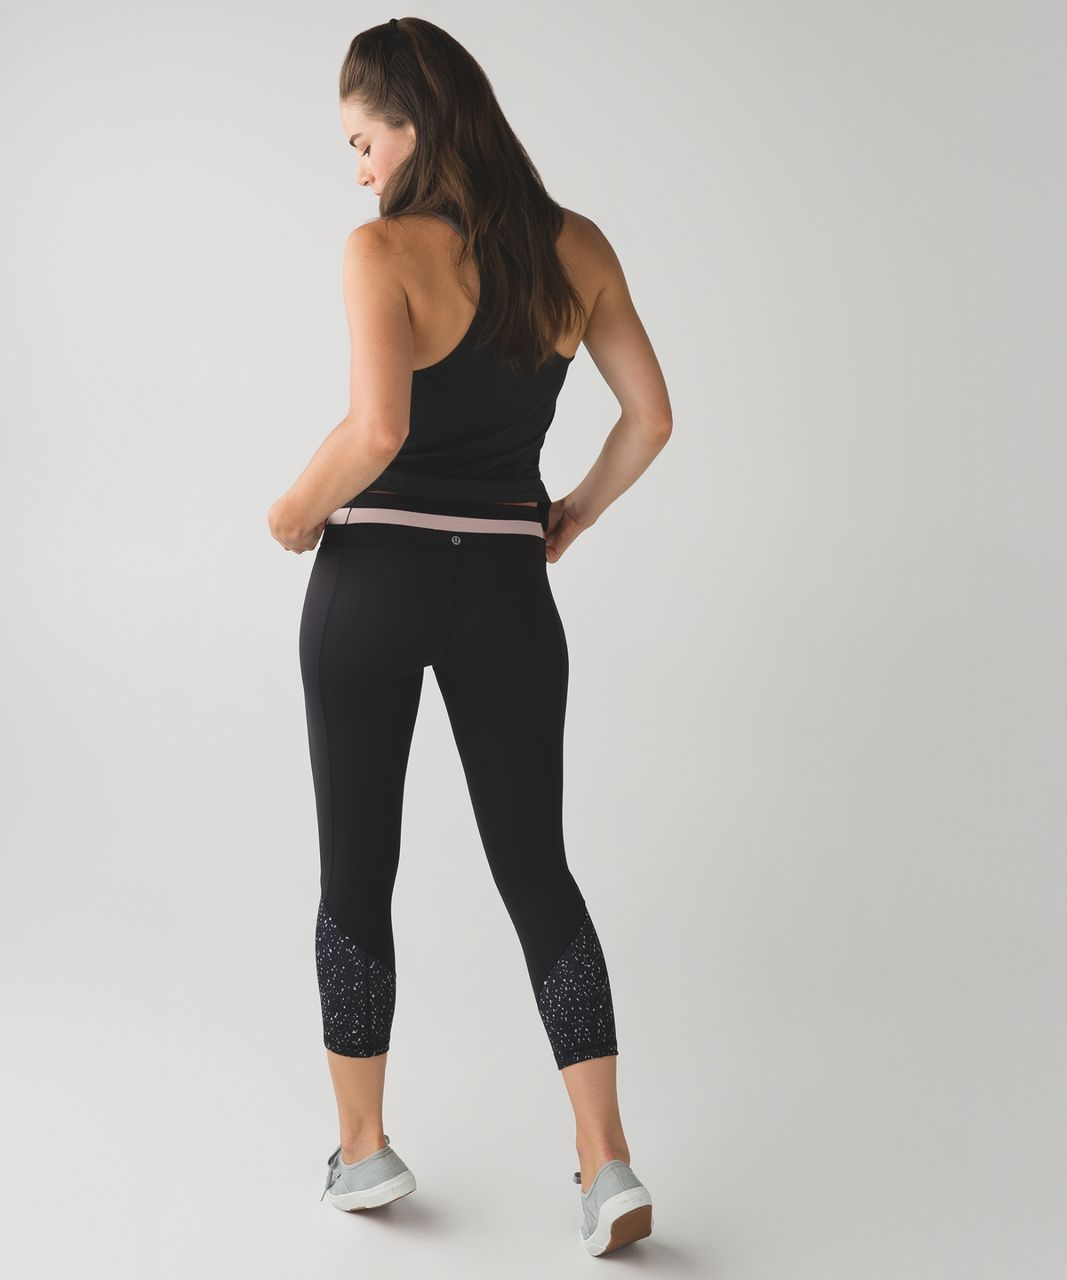 733490ff5 Lululemon Give Me Qi Crop - Butterfly Texture Mink Berry Black ...